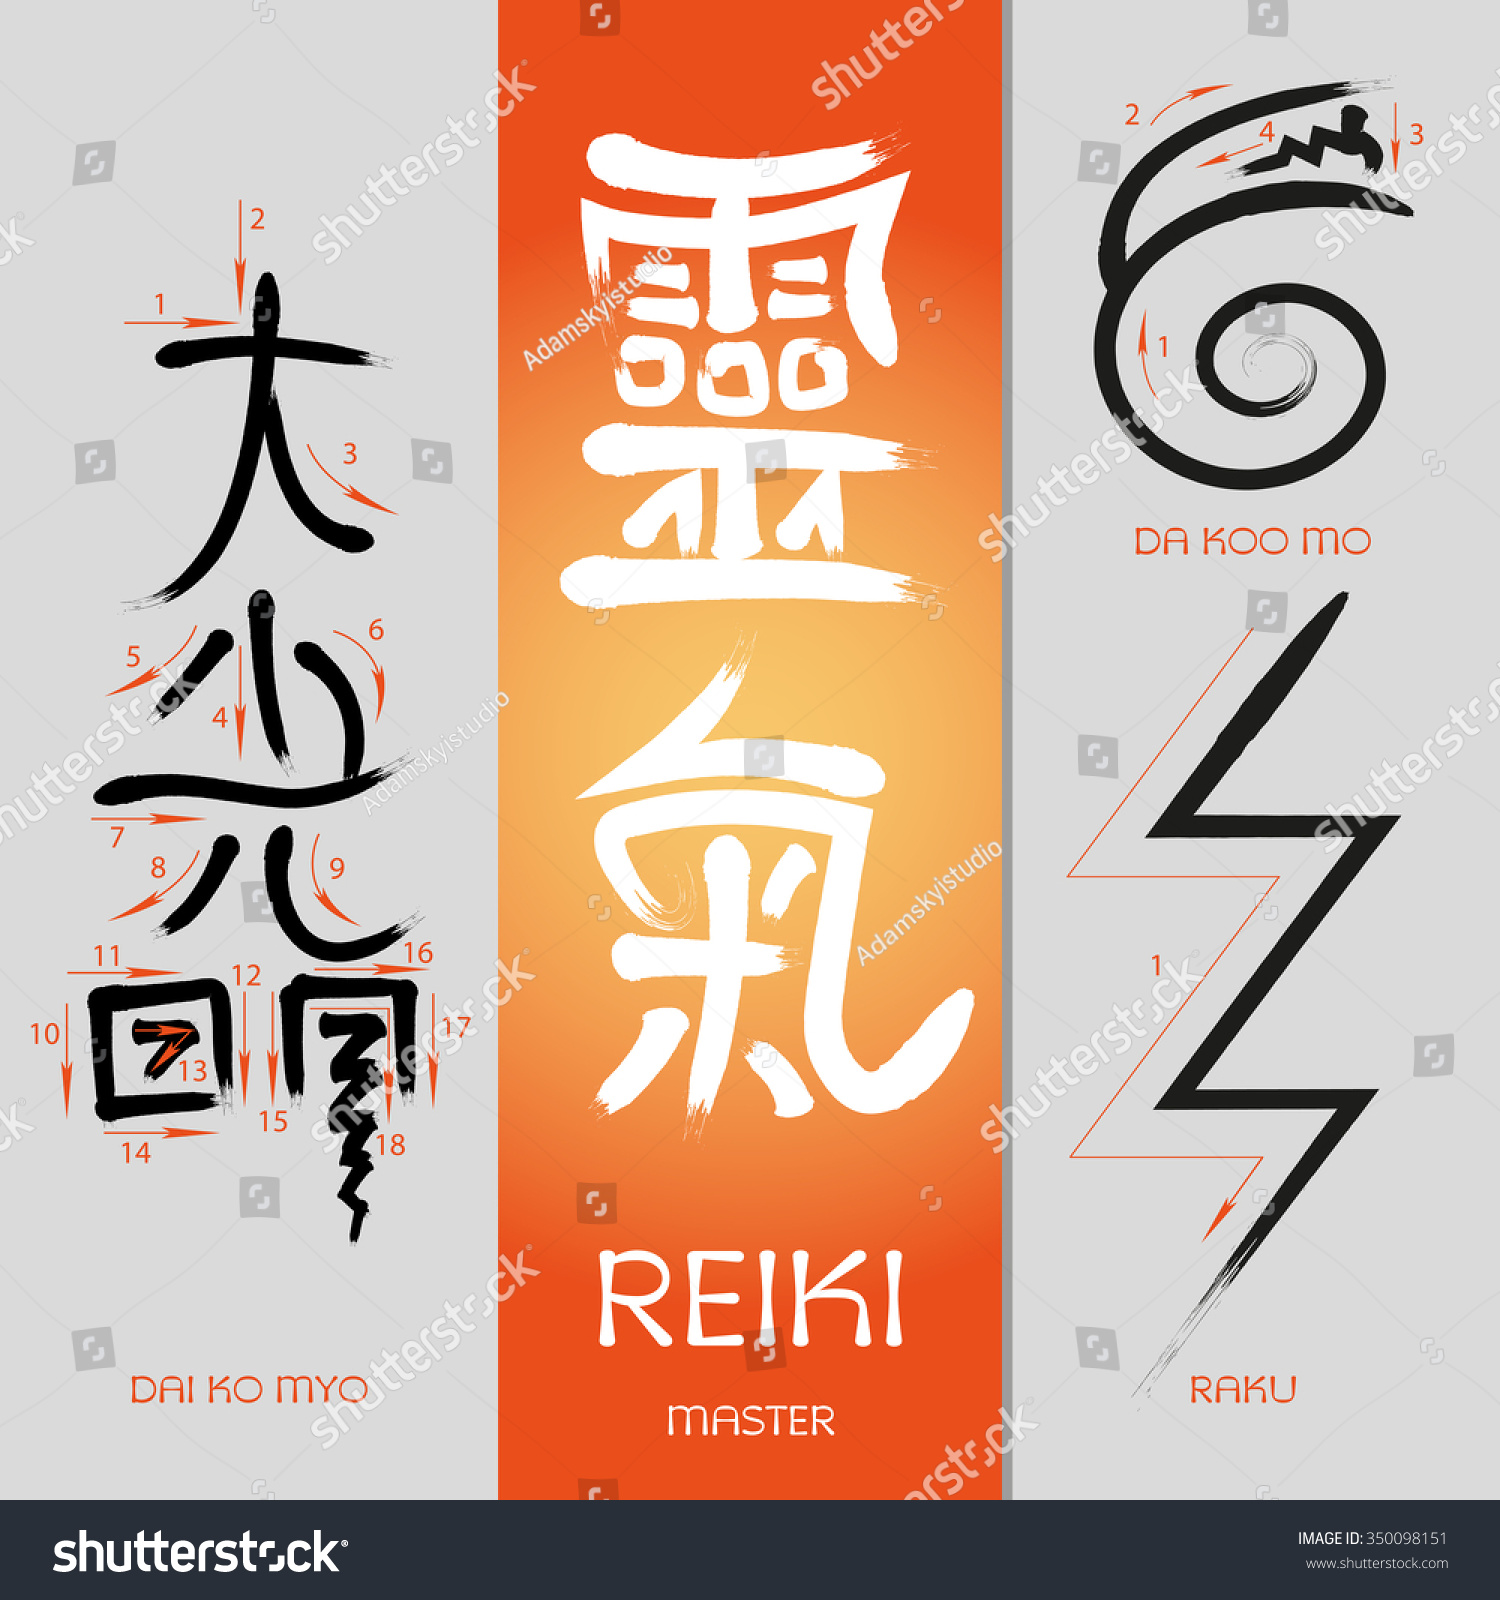 Symbols reiki signs light spiritual practice stock vector symbols reiki signs of light and spiritual practice the hieroglyph great shining light biocorpaavc Images